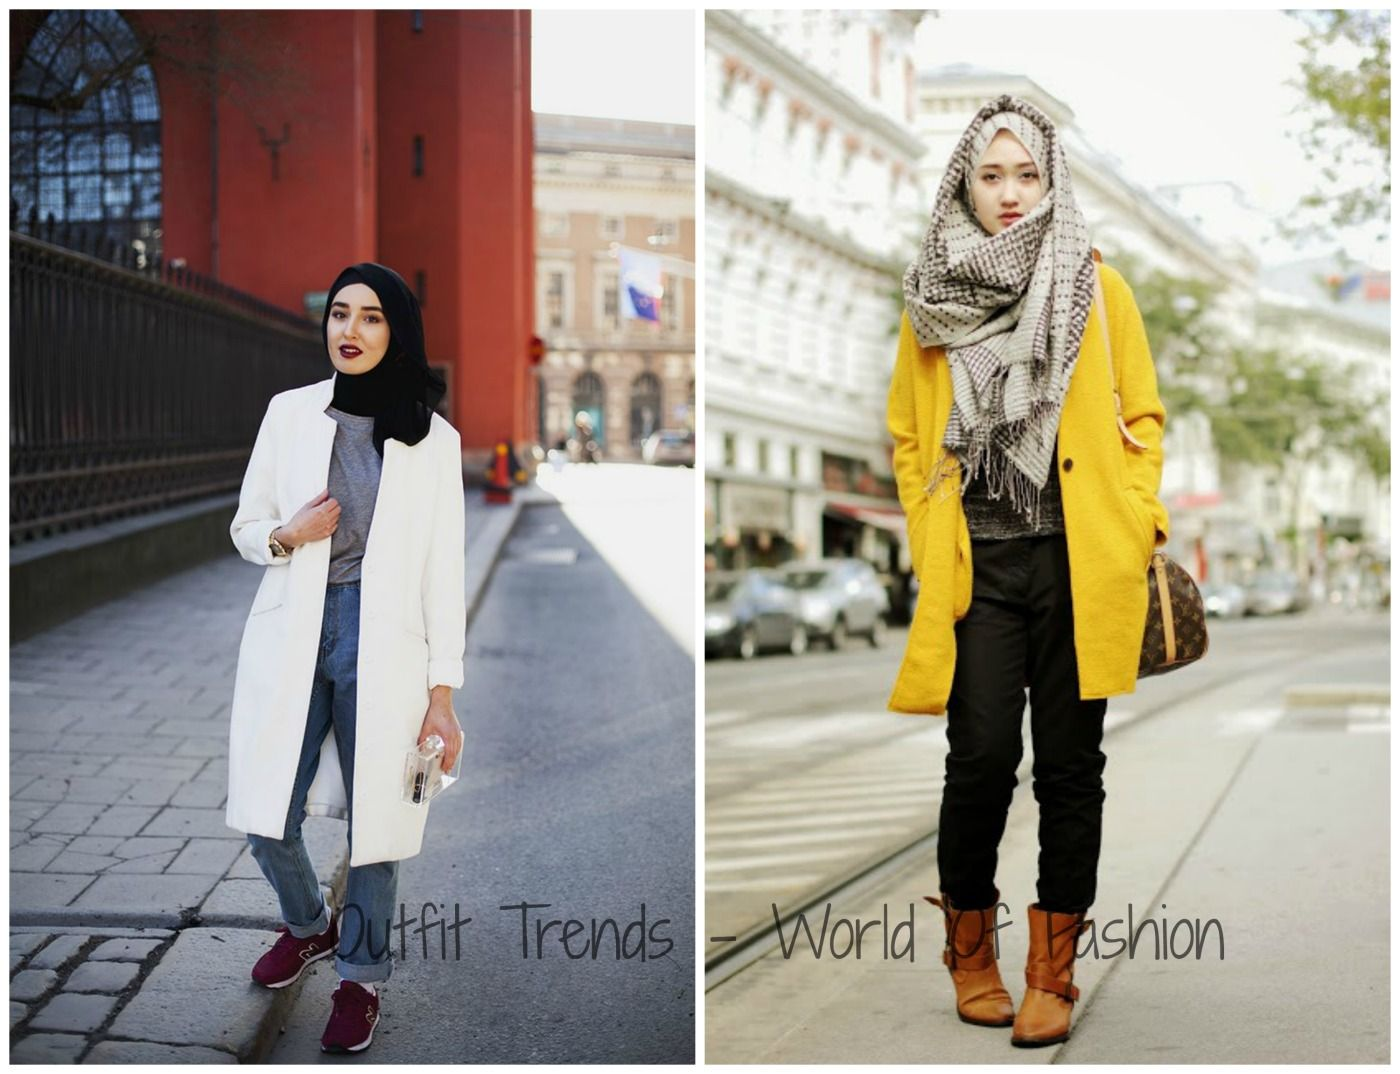 Hijab latest style trends exclusive photo